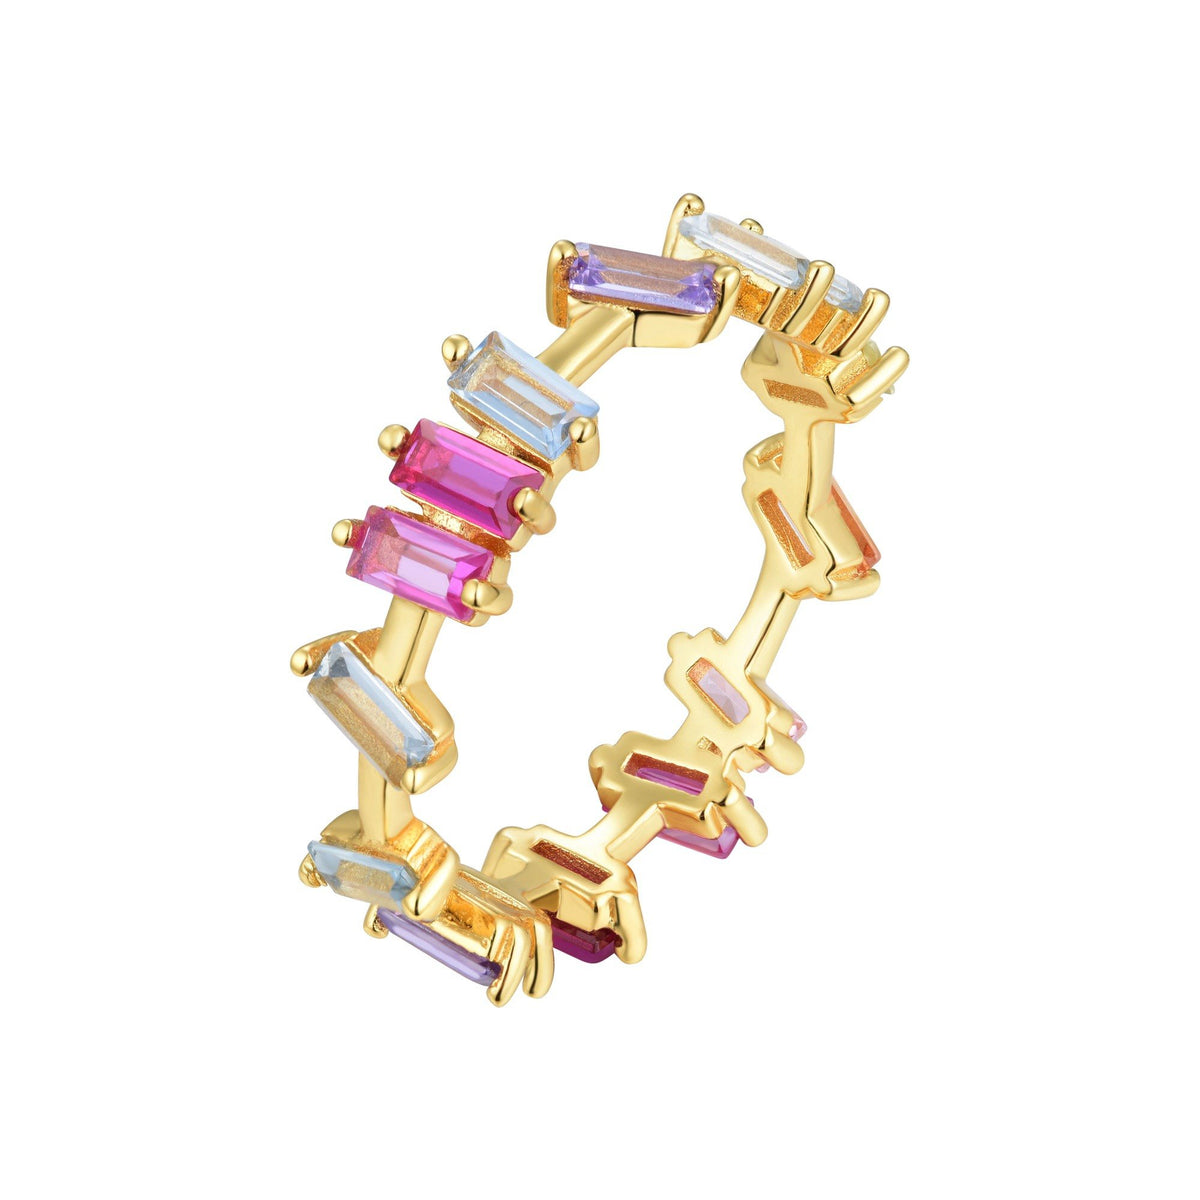 Ferentina | Pavlova Ring | 925 Silver | Multicolor CZ | 18K Gold Plated